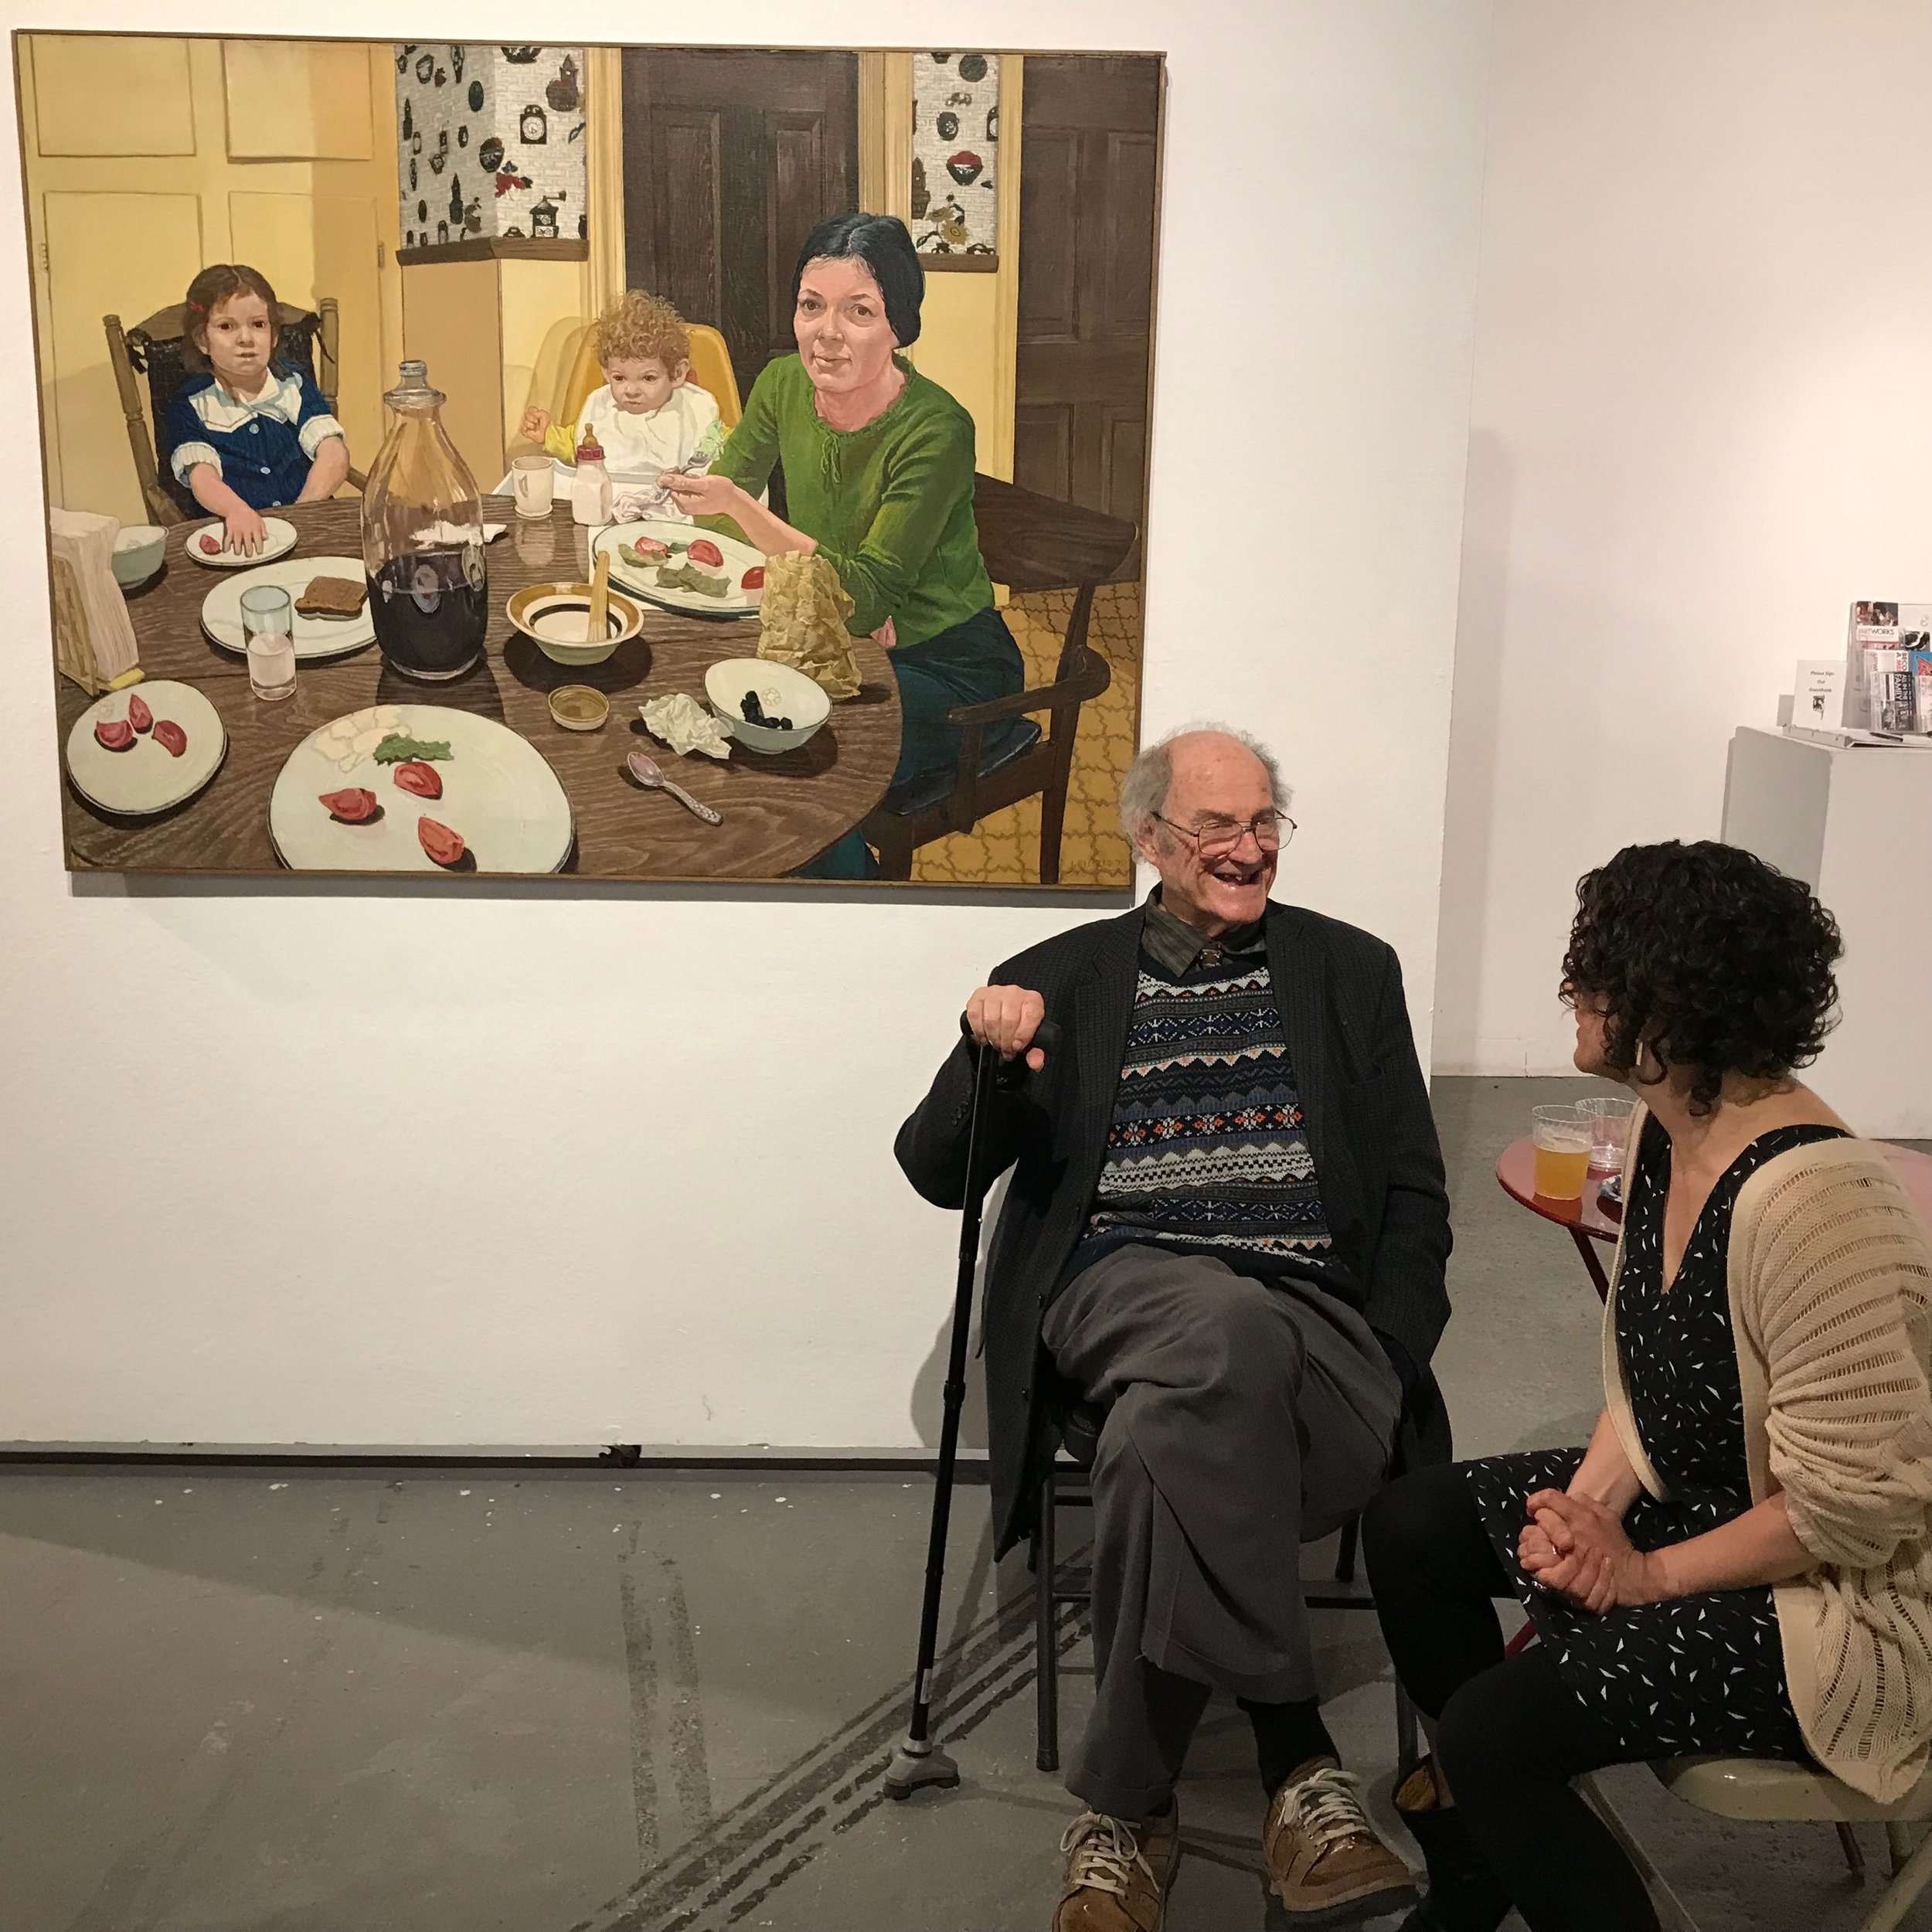 Mel Leipzig with his painting of his family in 1975 at The Shared Meal opening.JPG